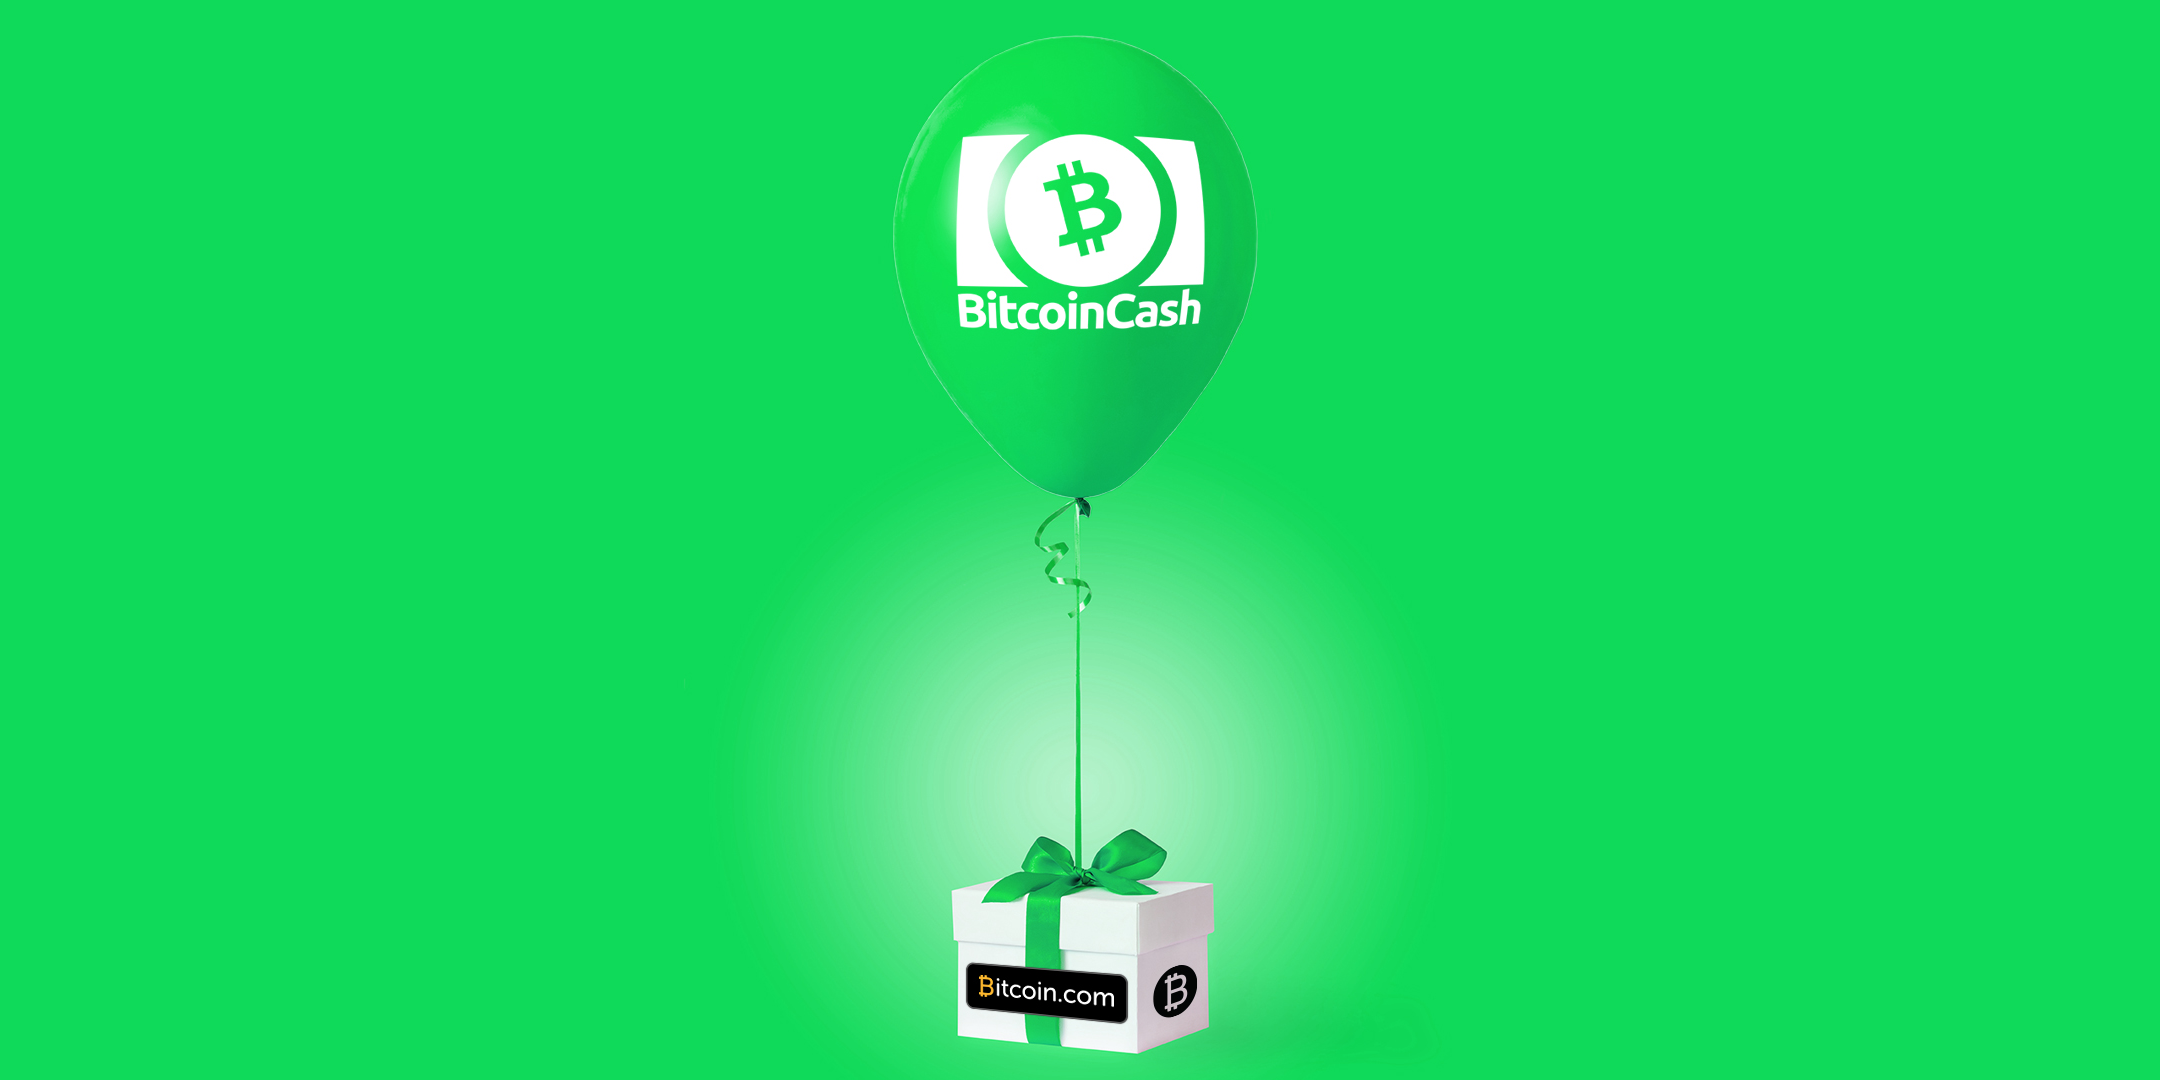 PR: Bitcoin.com Pairs up with eGifter to Simplify and Streamline Gift Card Purchases